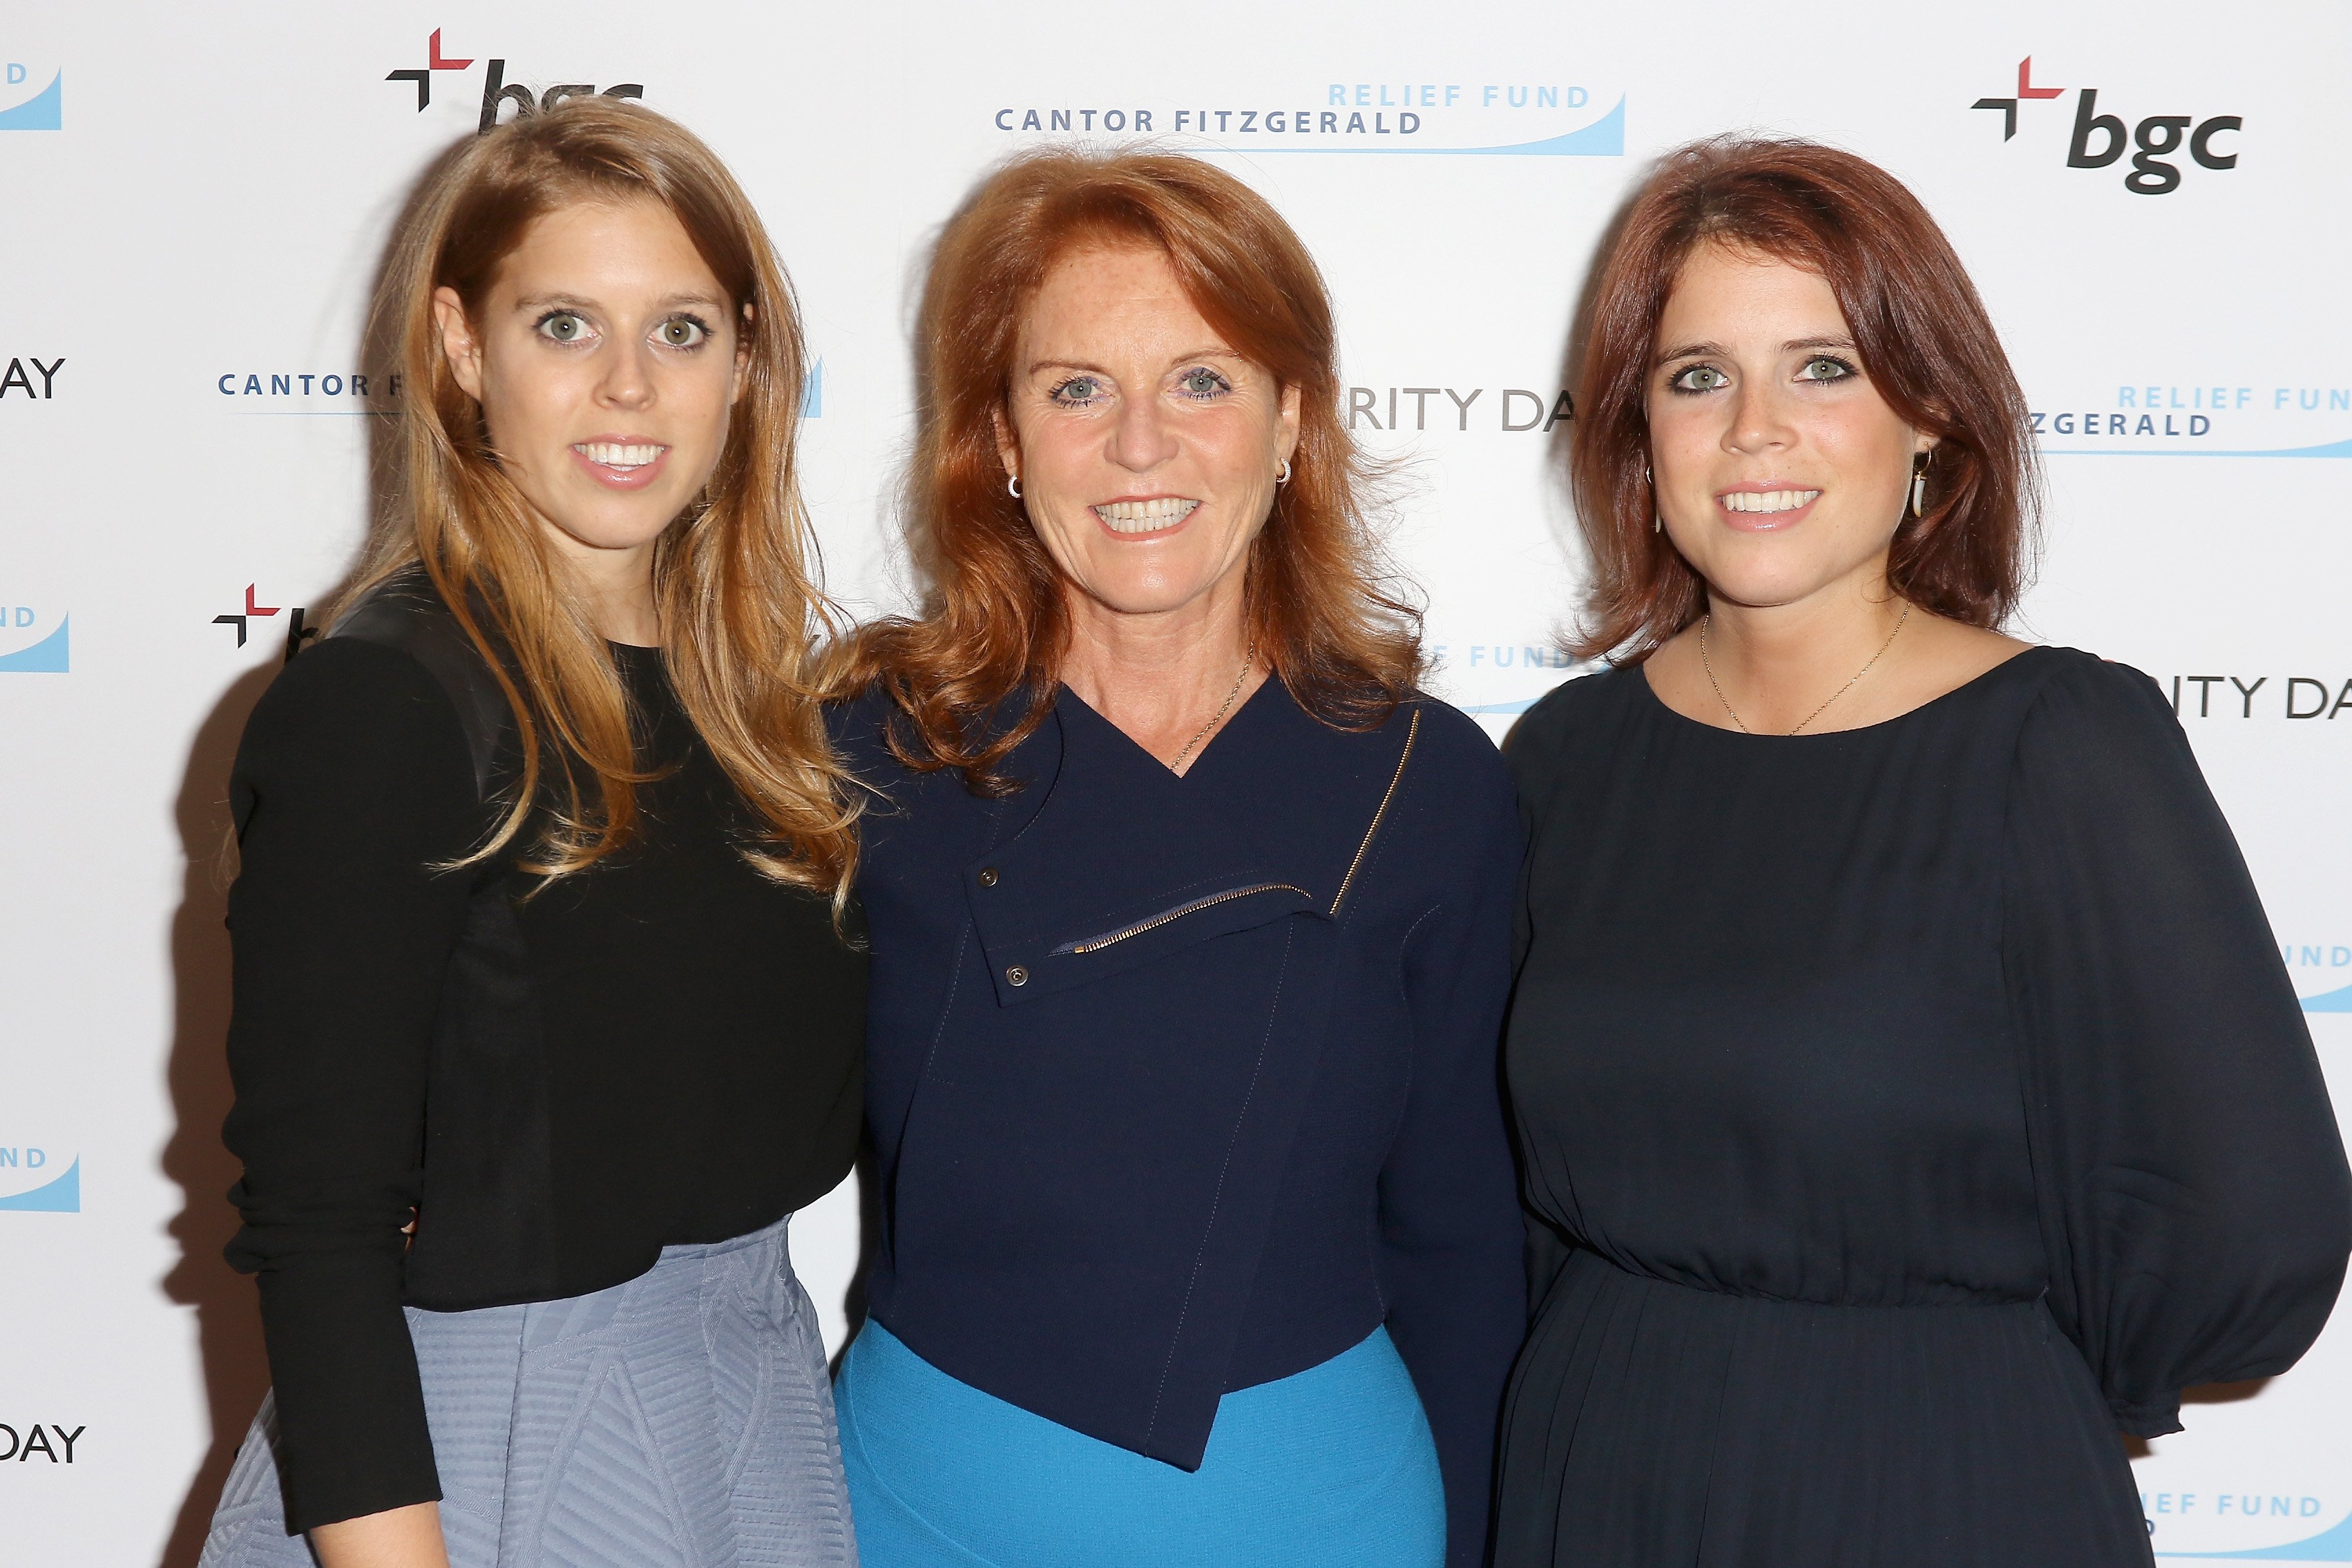 Beatrice Ferguson, Sarah Ferguson, Duchess of York, and Eugenie Ferguson attend Annual Charity Day on September 11, 2015  | Photo: Getty Images.